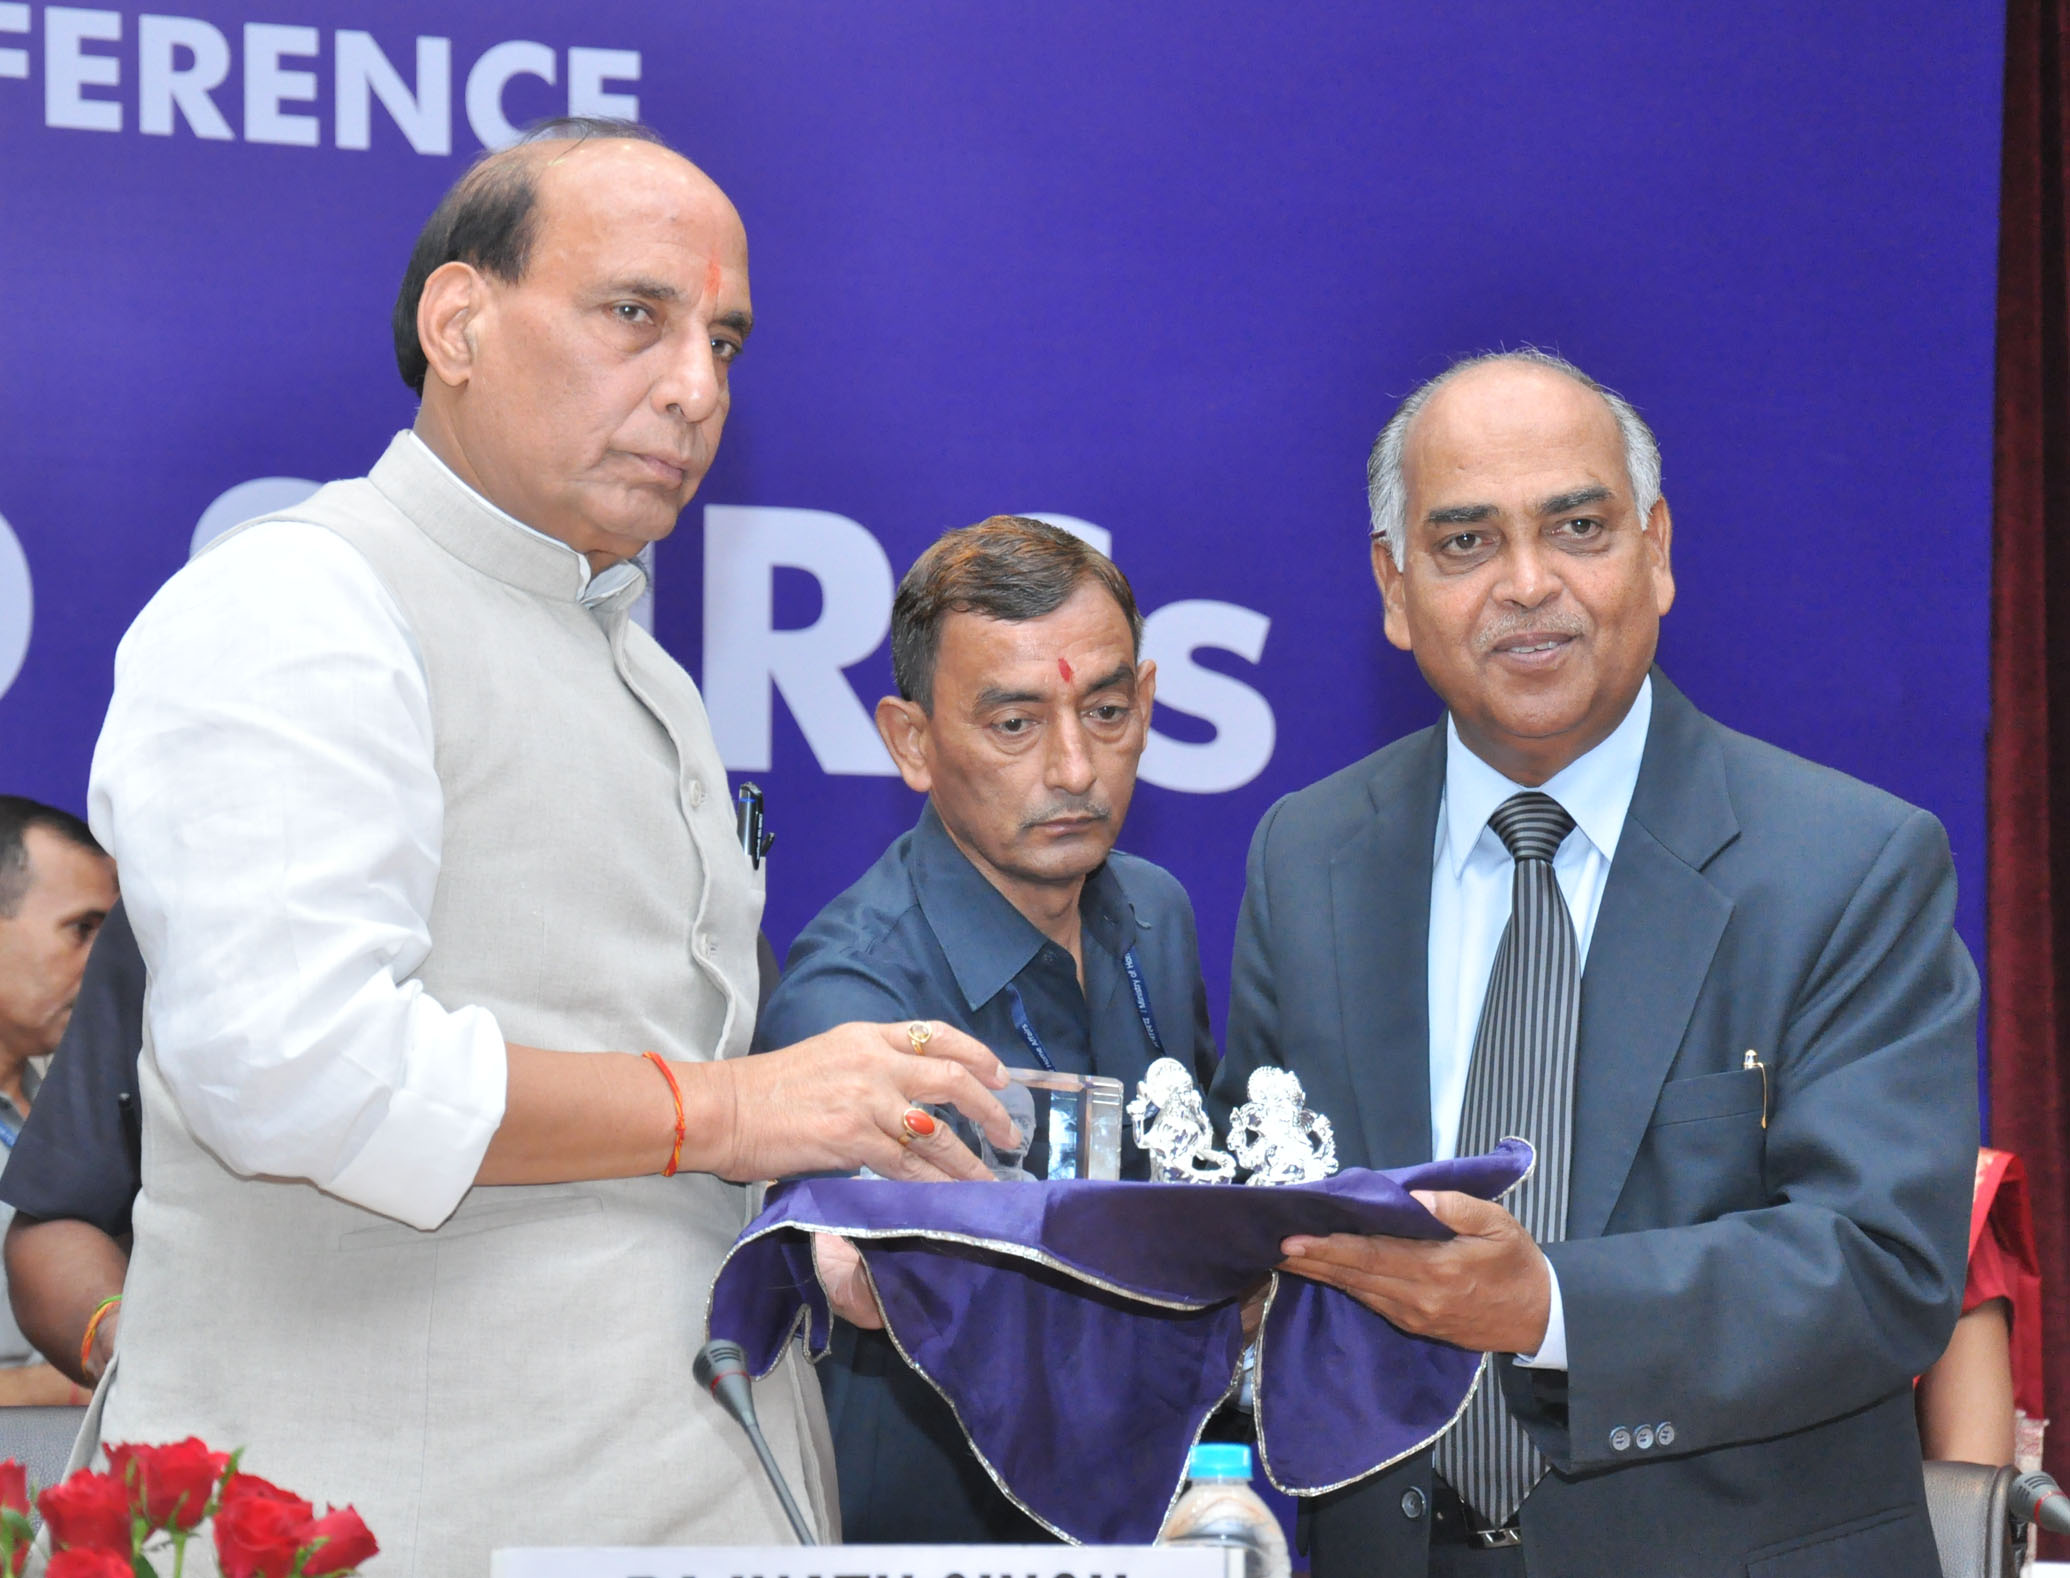 The Justice Cyriac Joseph, Chairperson, National Human Rights Commission (NHRC) presenting a memento to the Union Home Minister, Shri Rajnath Singh, at the inauguration of a Conference of the National Human Rights Commission (NHRC) and the State Human Rights Commissions (SHRCs), in New Delhi on September 18, 2015.